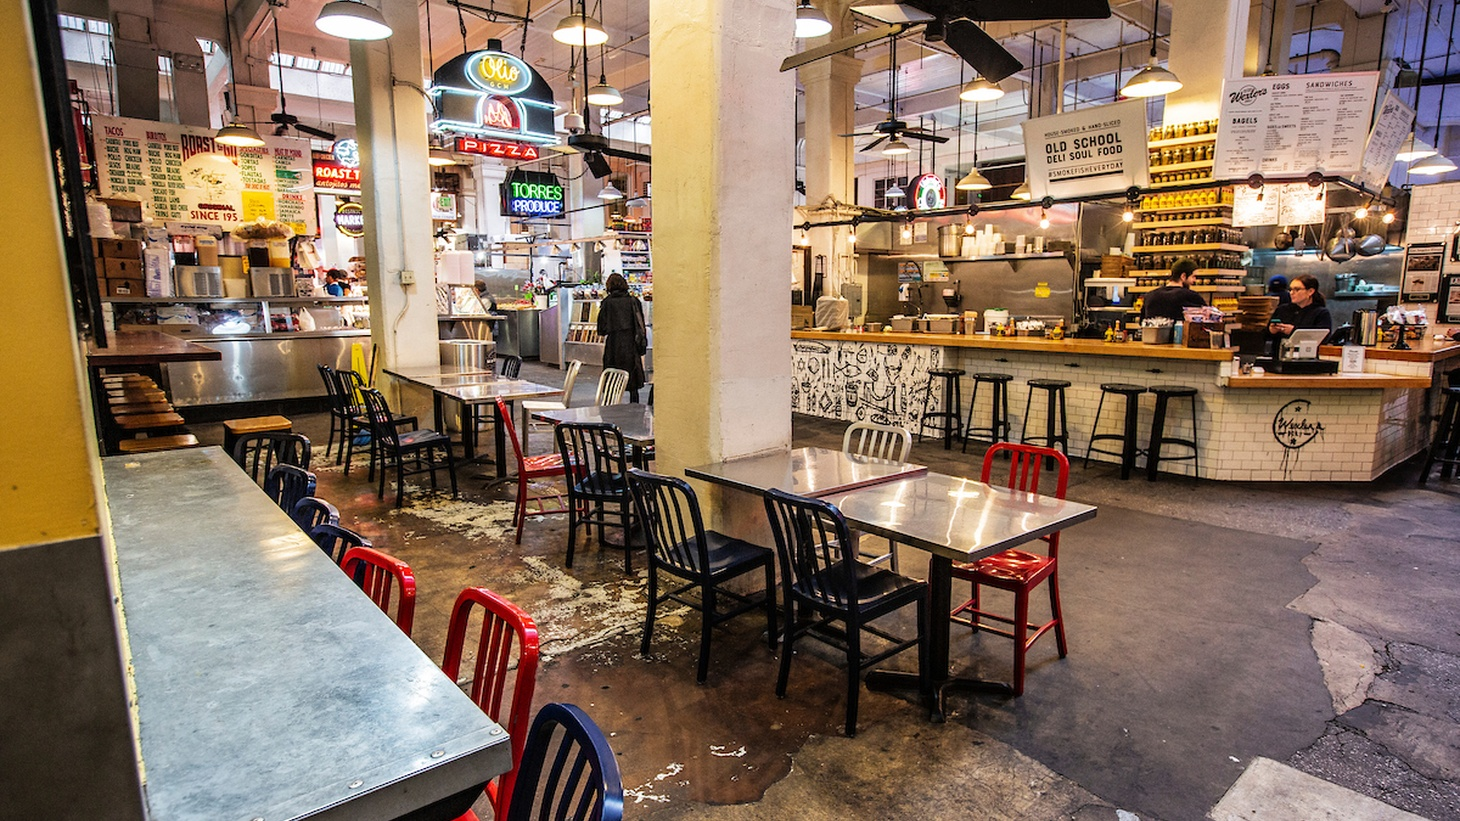 Grand Central Market in downtown LA is largely empty of customers. As stay-at-home orders continue, what's the economic forecast for the city?